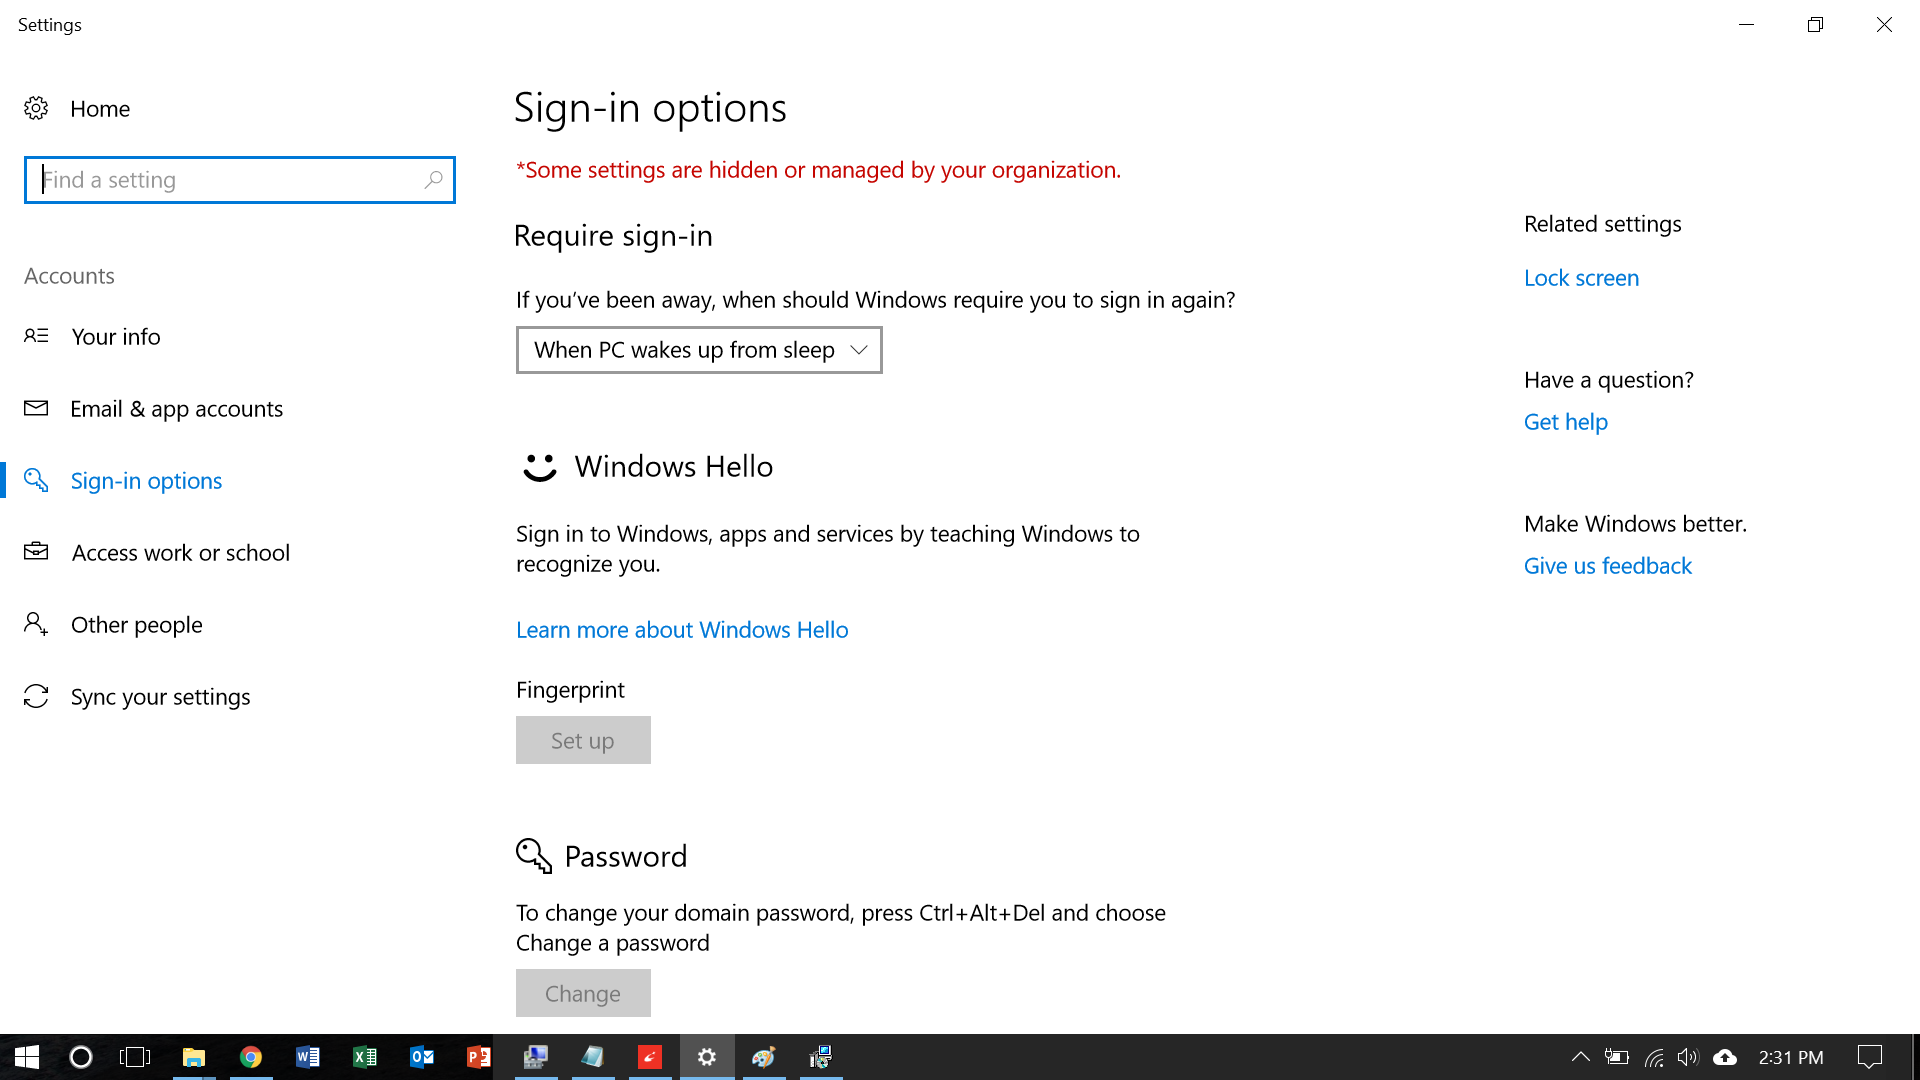 Windows logon credentials are unavailable - Finger Print Option Grayed Out